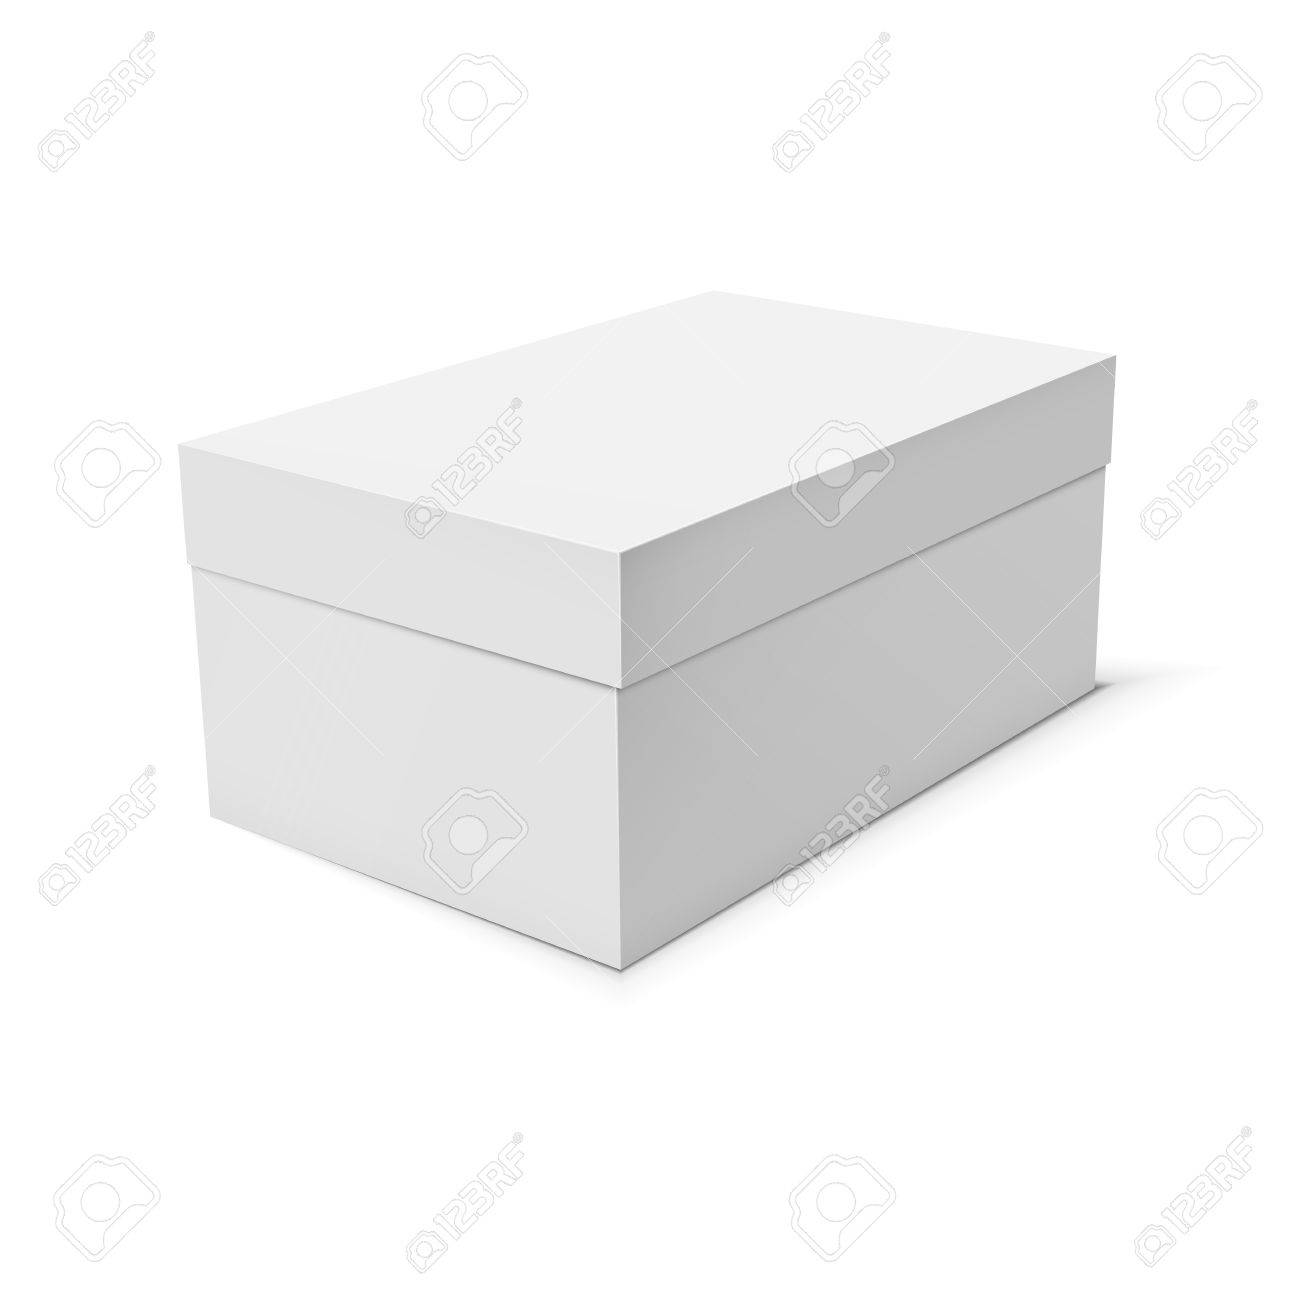 blank paper or cardboard box template on white background vector